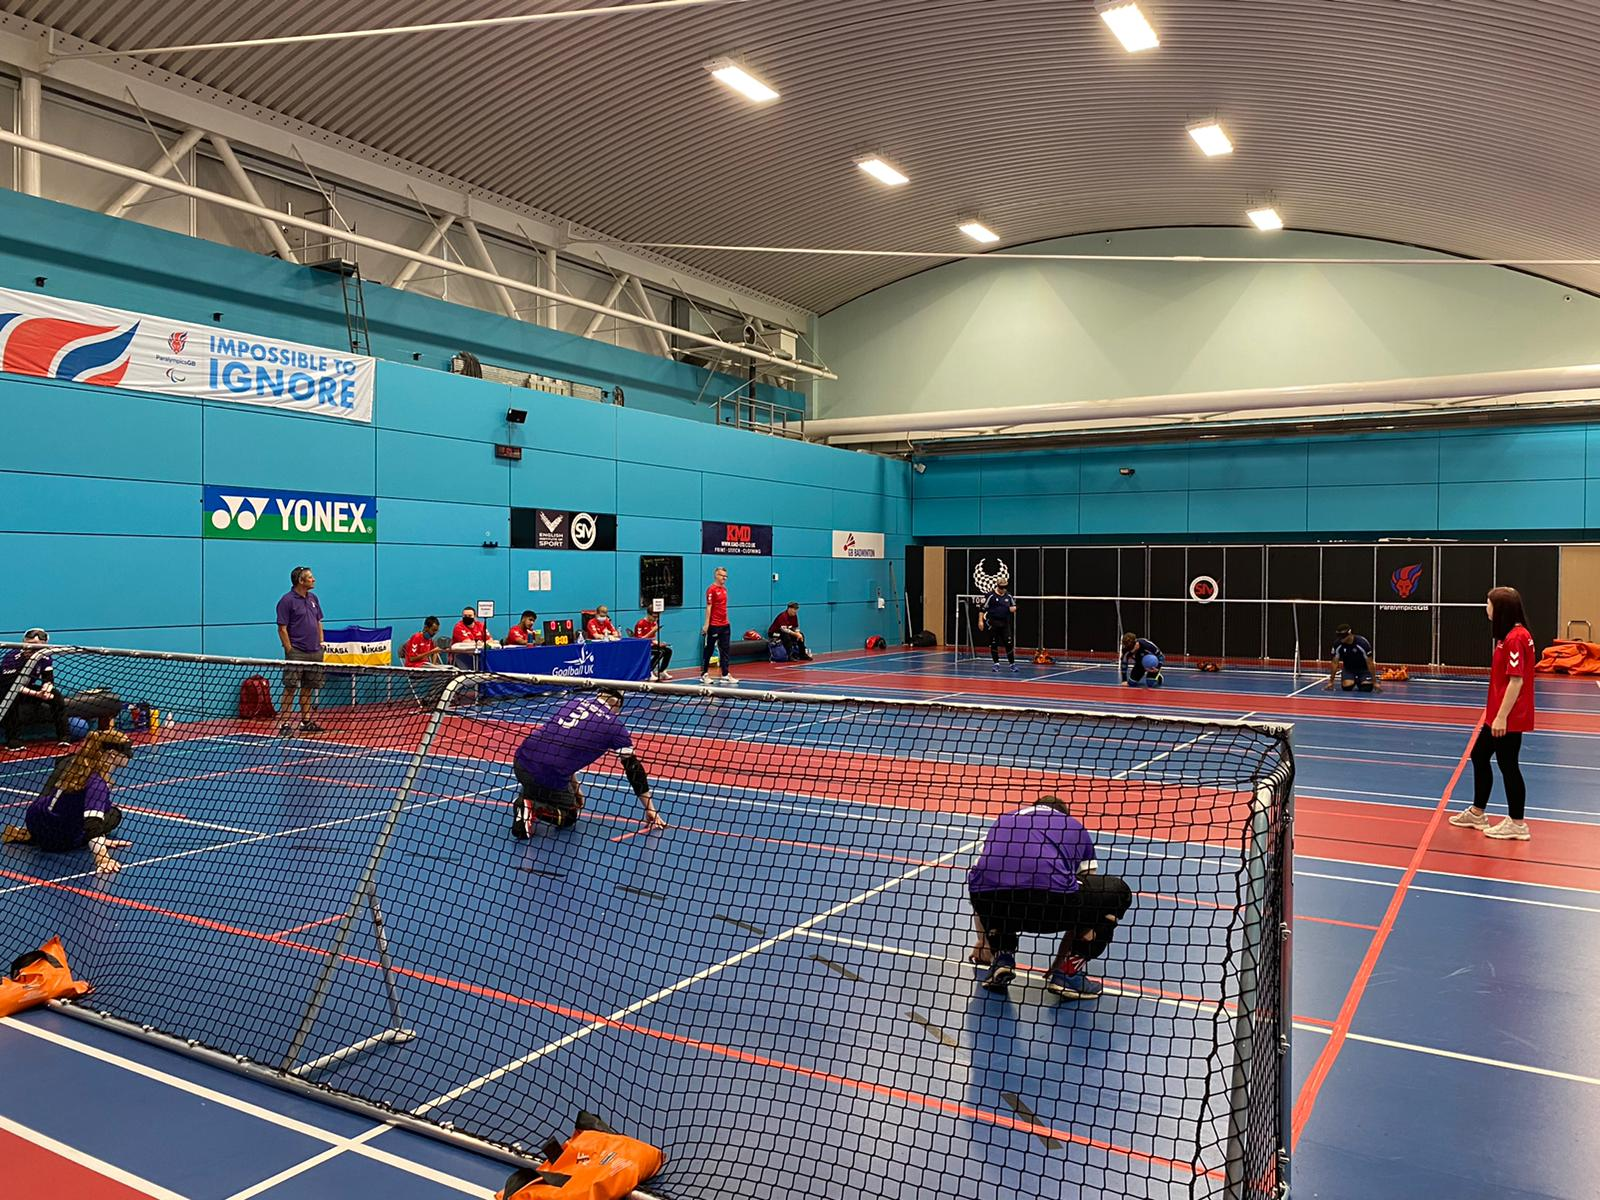 Picture taken behind the goal of Scarborough Panthers in purple jerseys against Mersey Sharks on the other side of the court.